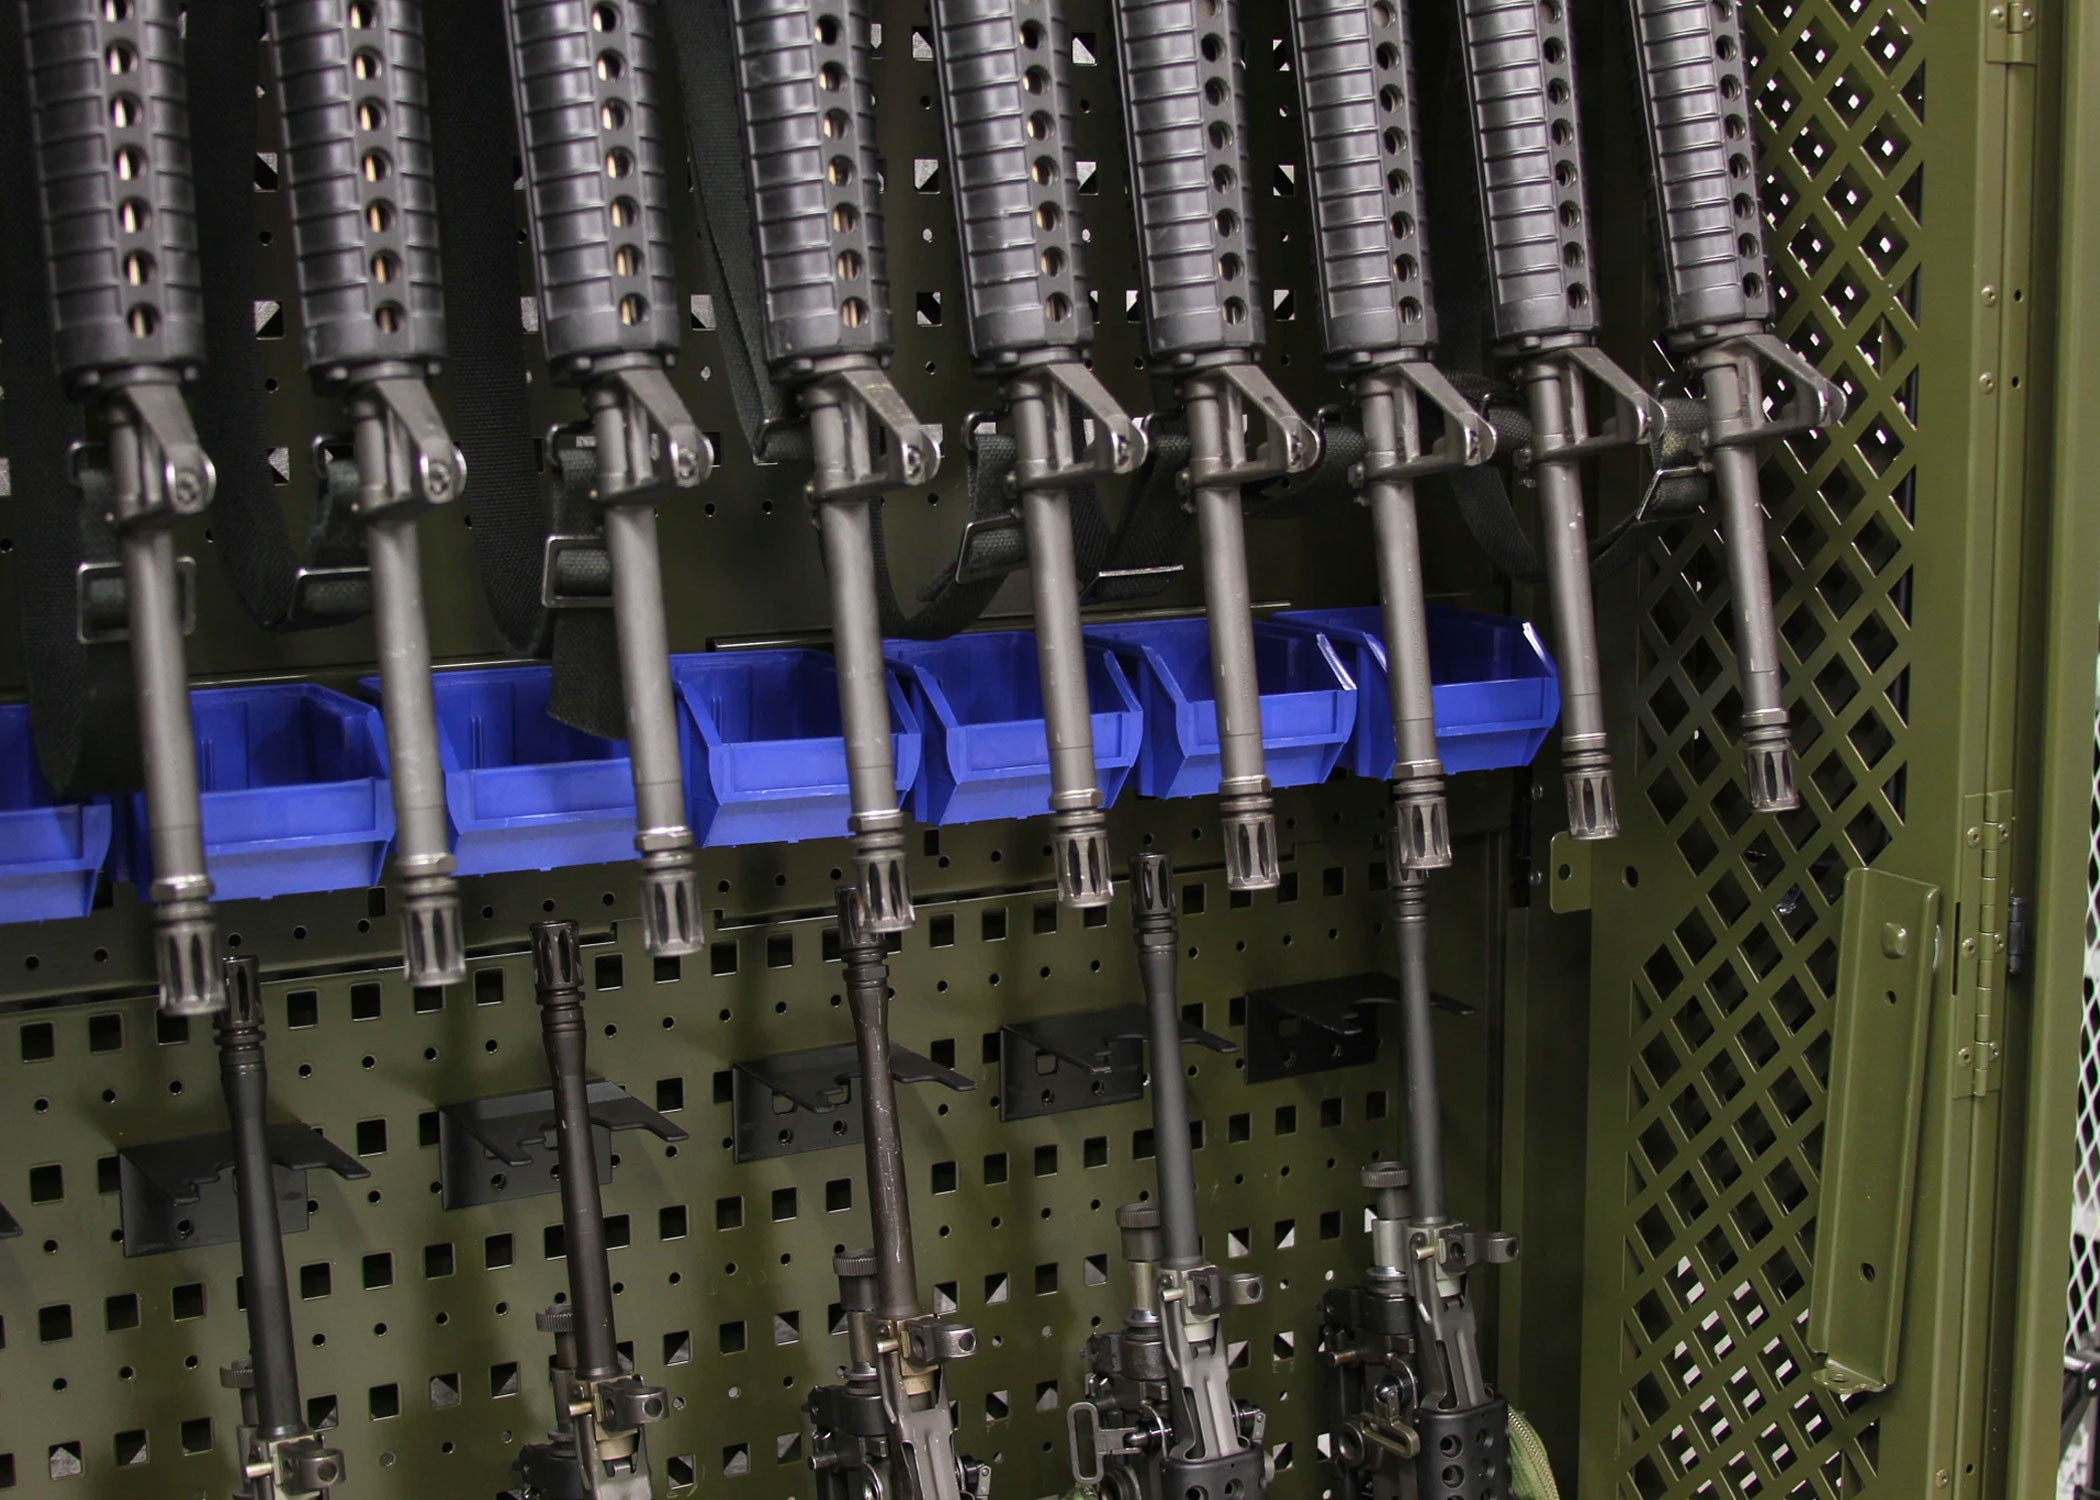 Weapon Rack - Protect Gear